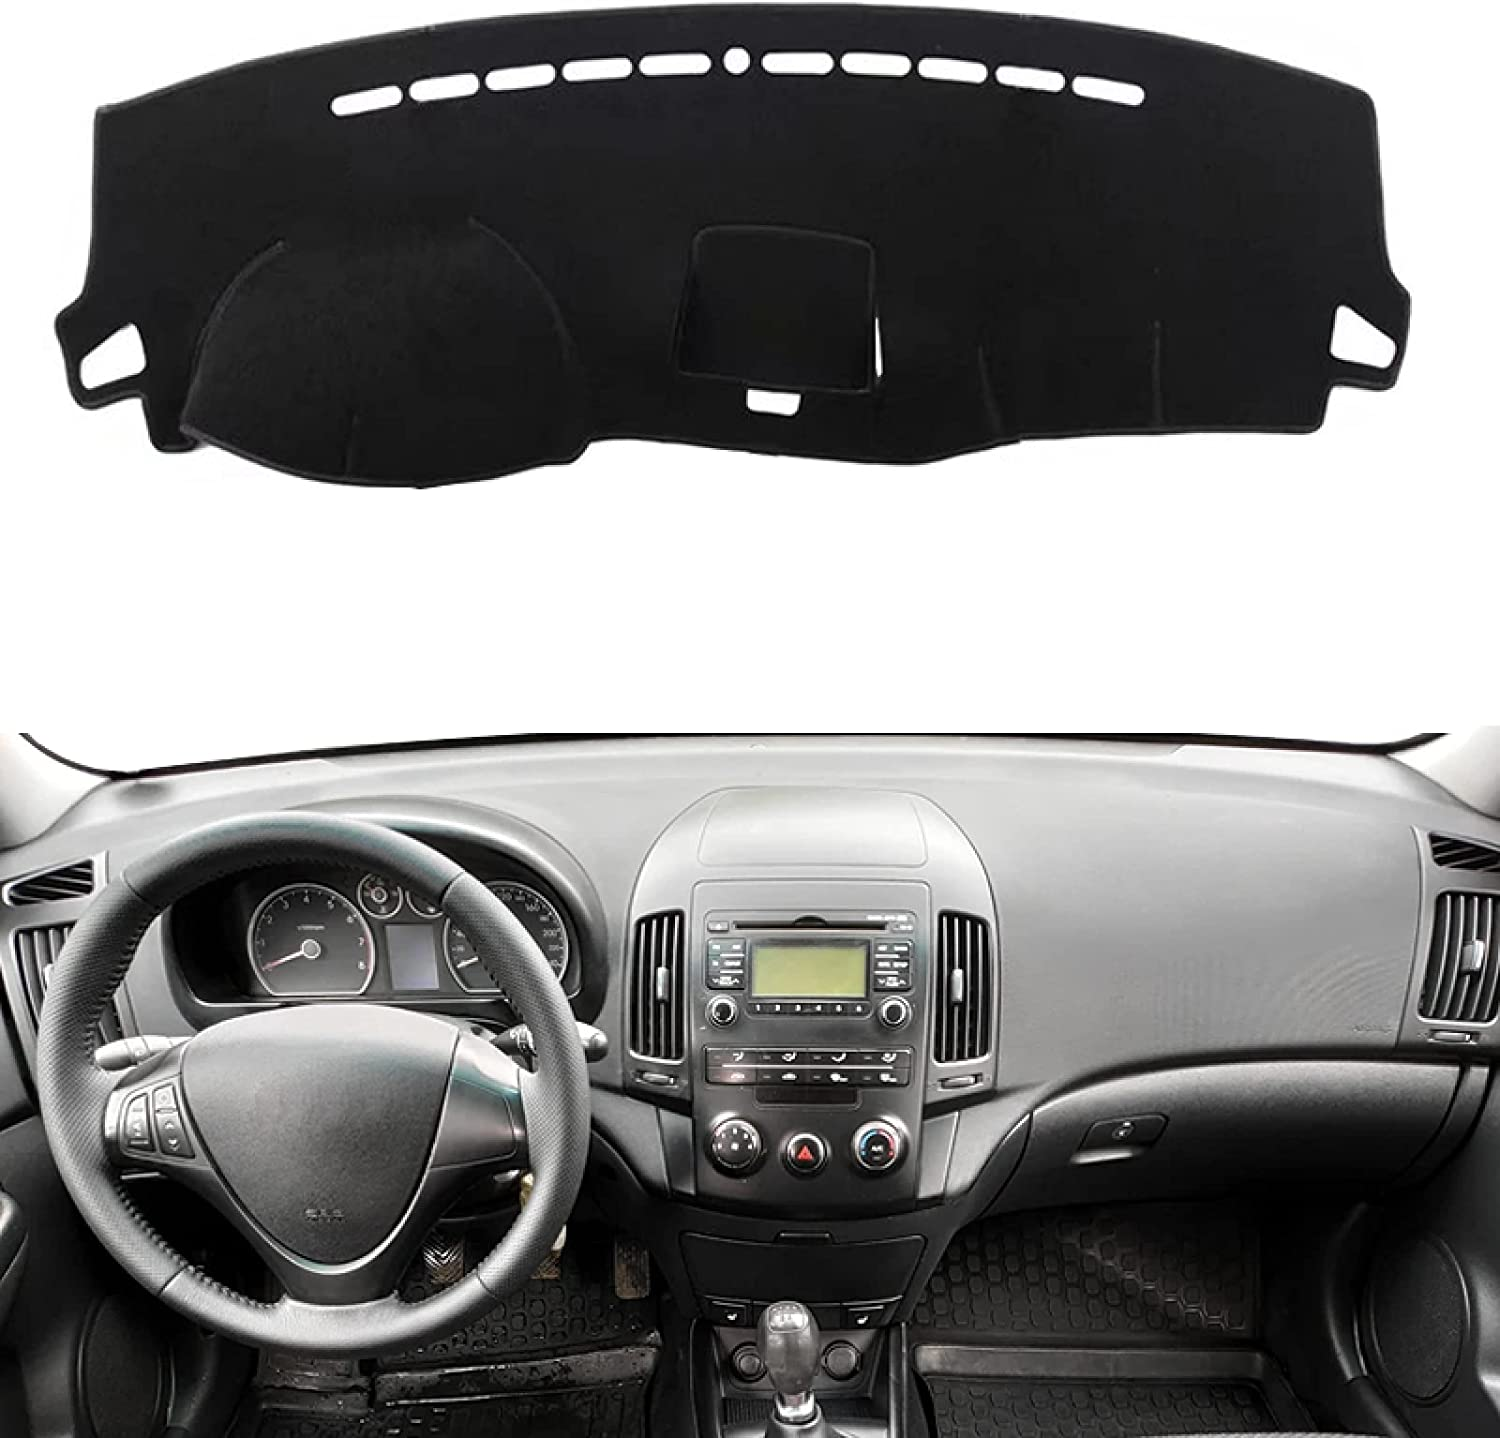 Car Dashboard Cover Mat for Hyundai New arrival Coupe I30 Kombi Over item handling ☆ 2007-2012 I